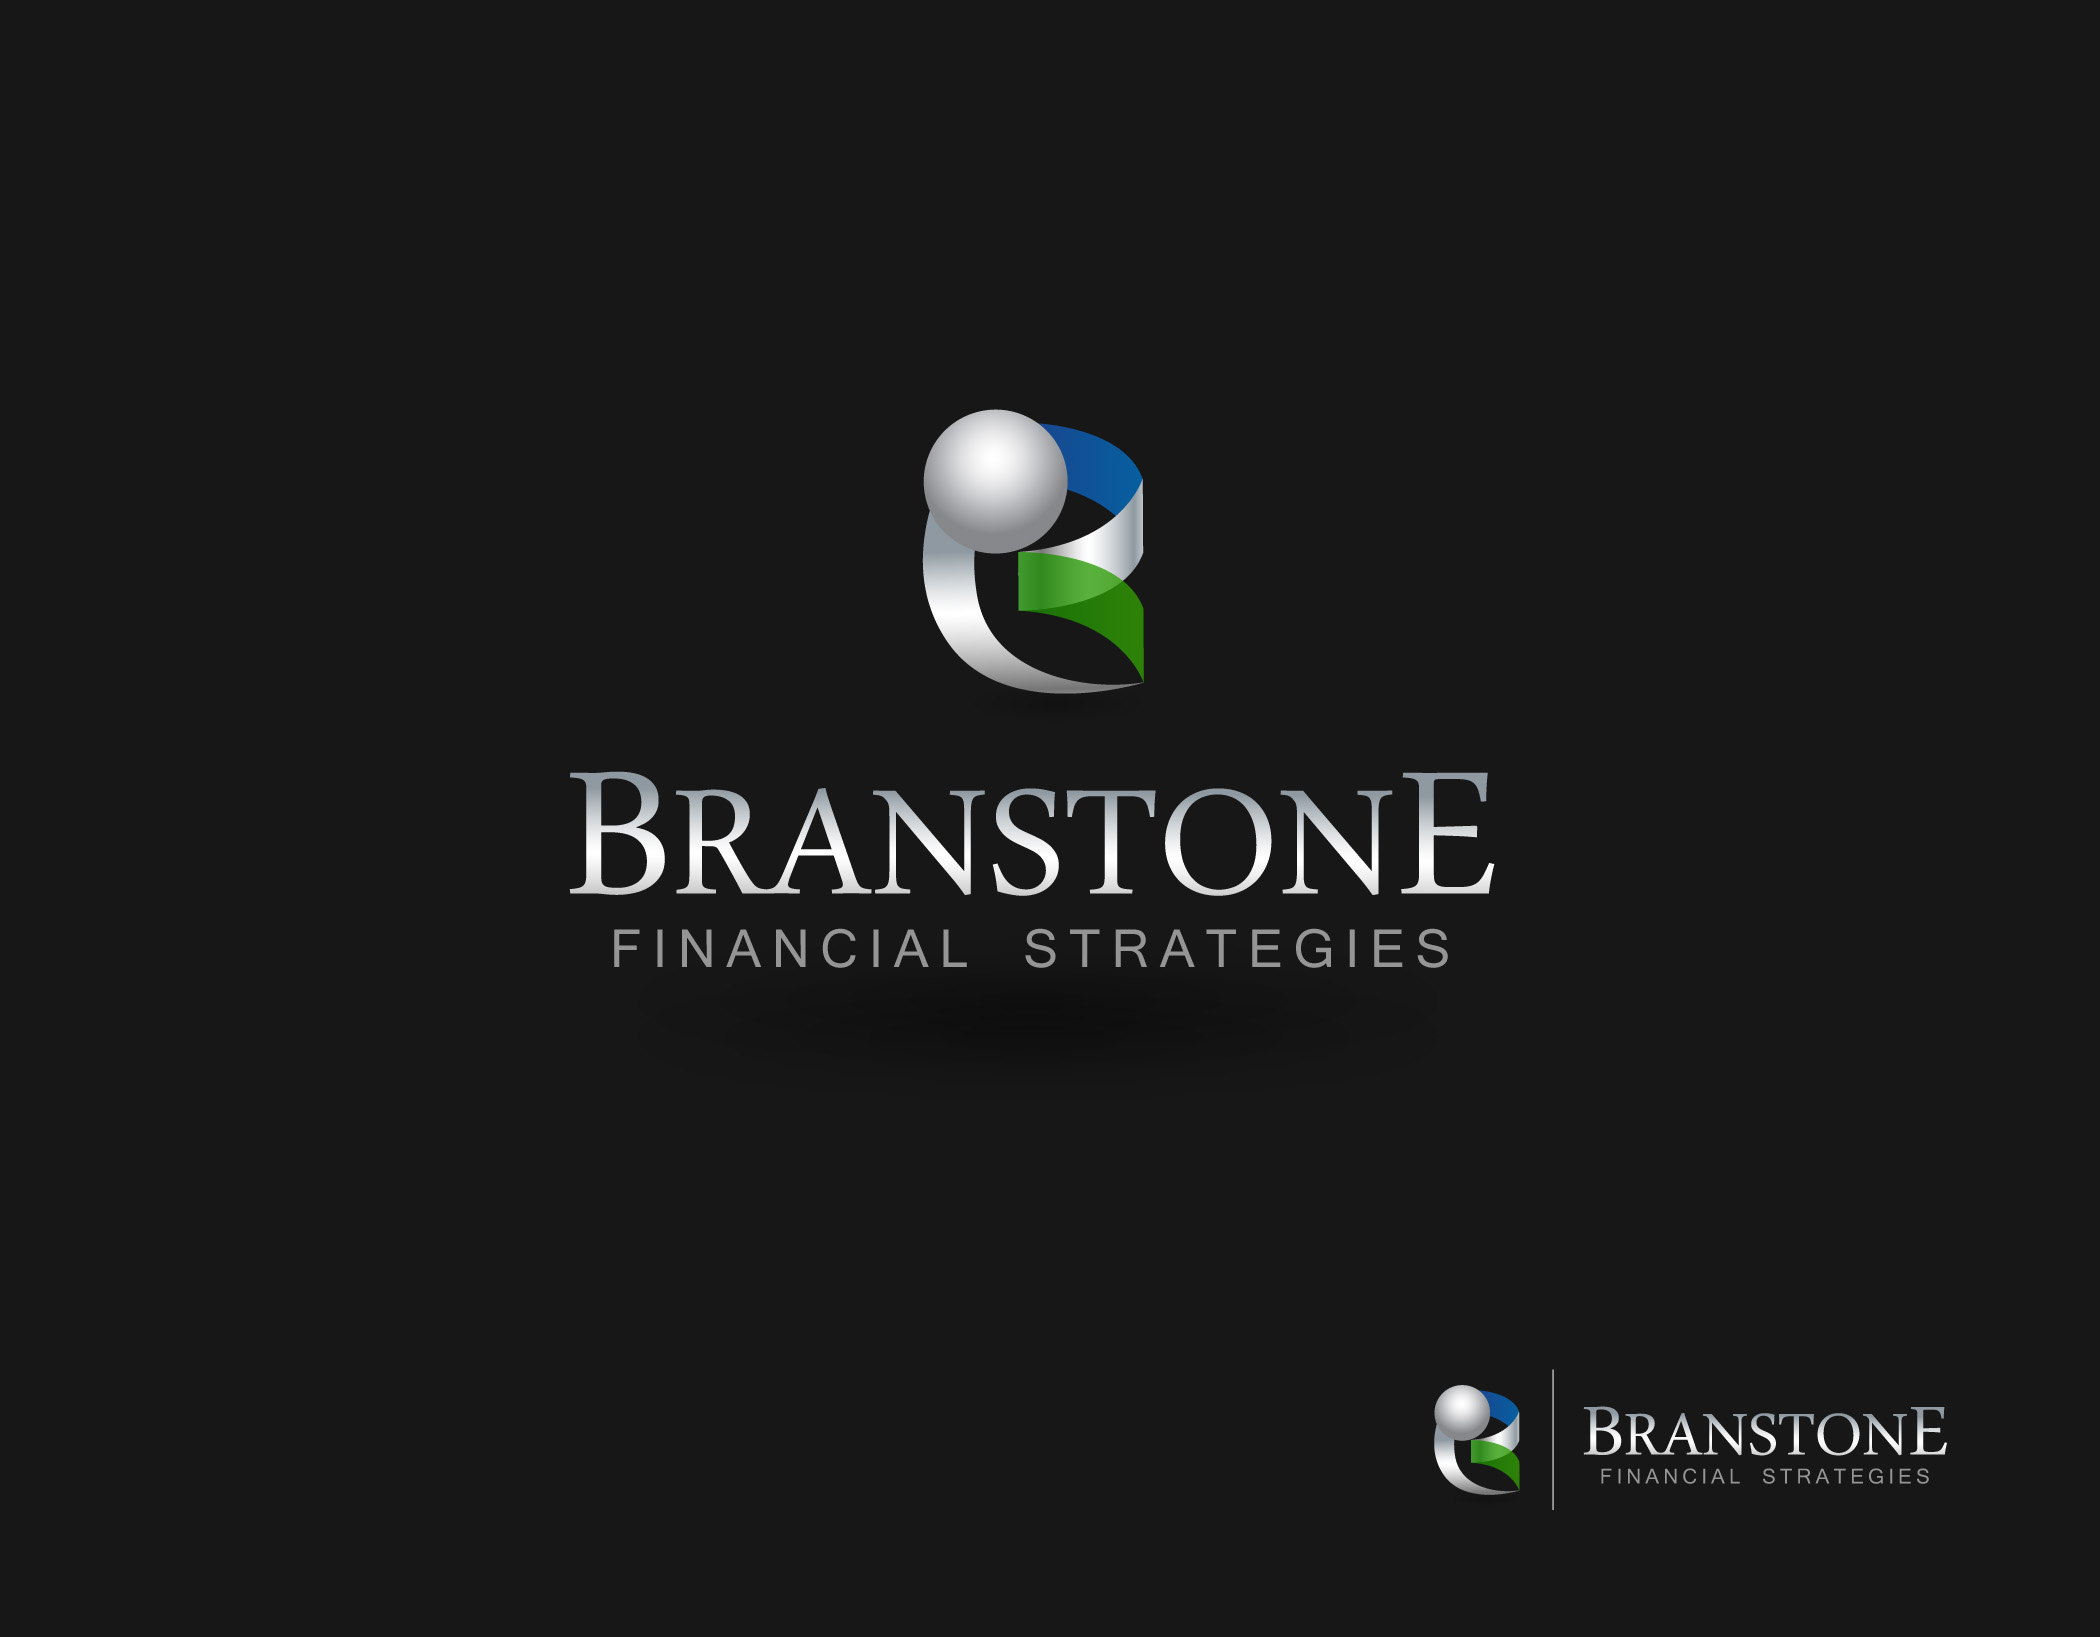 Logo Design by Mark Anthony Moreto Jordan - Entry No. 262 in the Logo Design Contest Inspiring Logo Design for Branstone Financial Strategies.